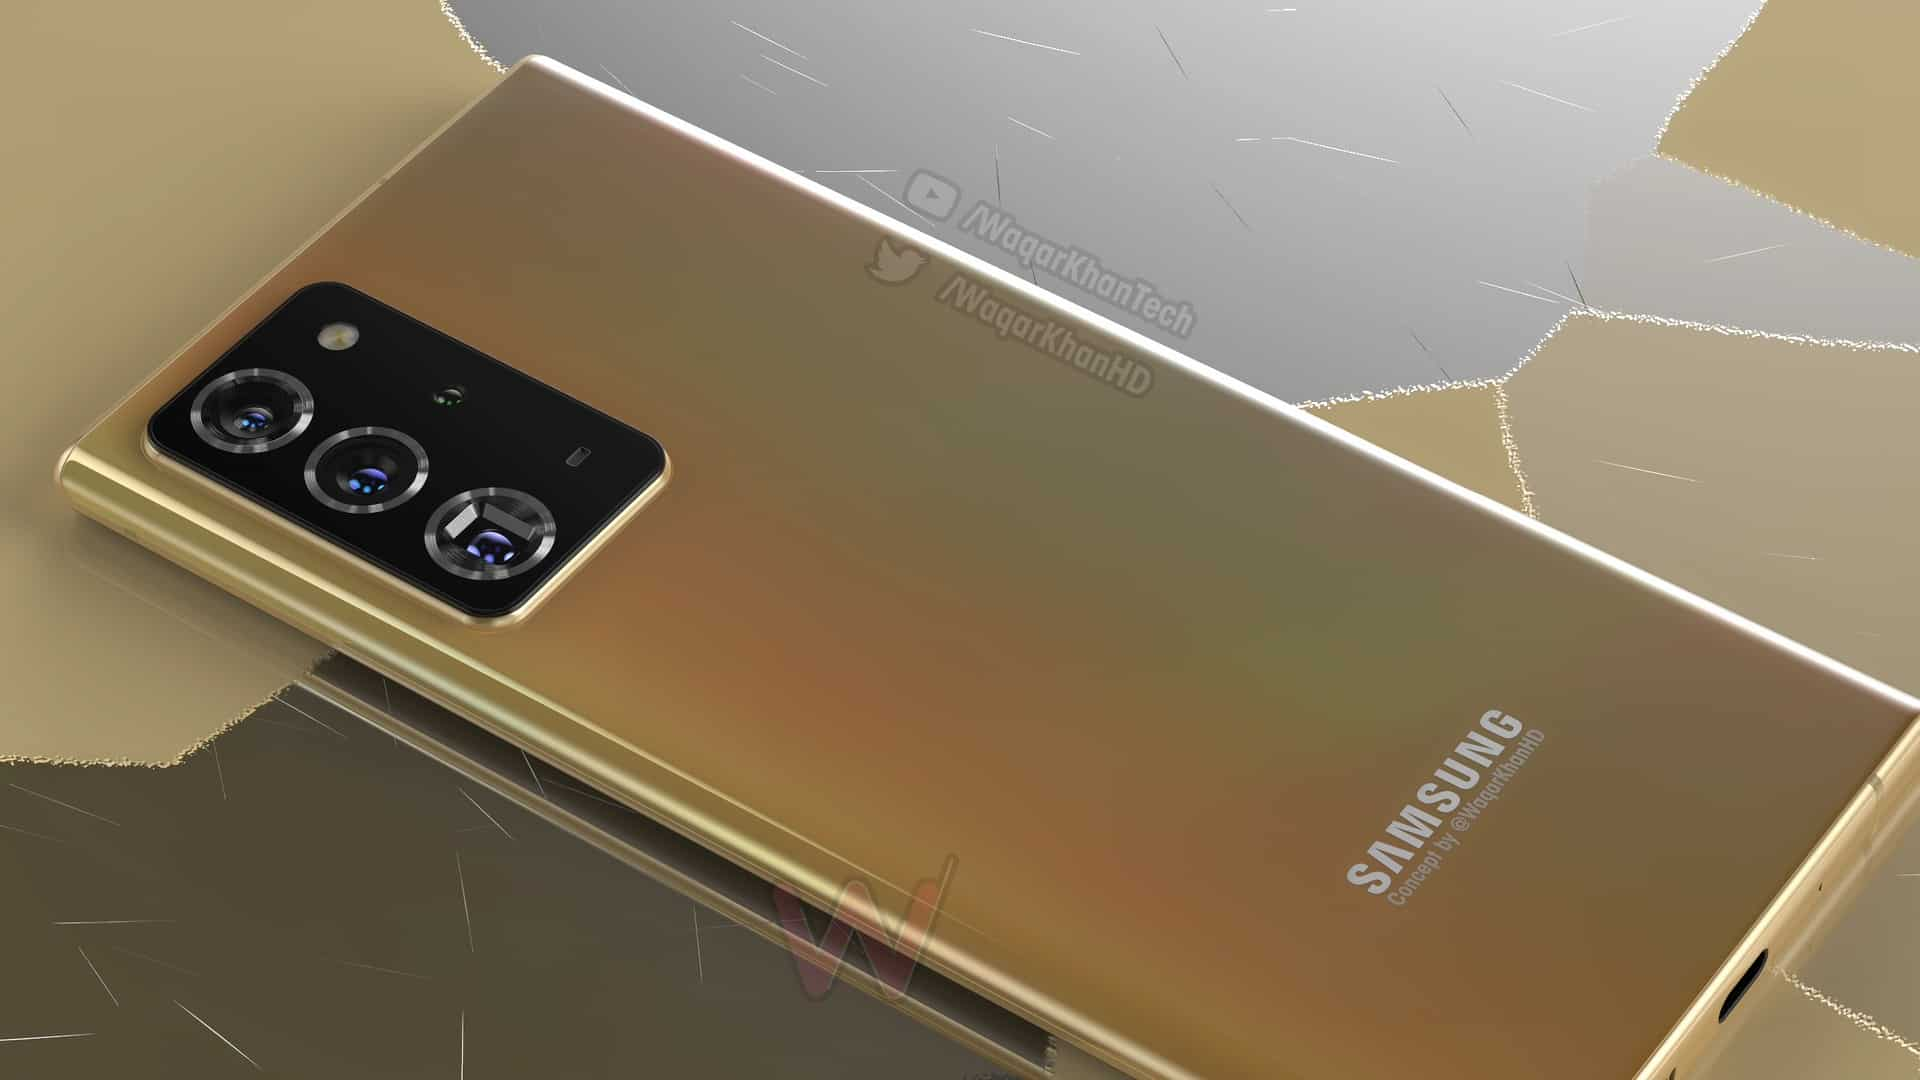 Samsung Galaxy Note 20 Plus concept image 9